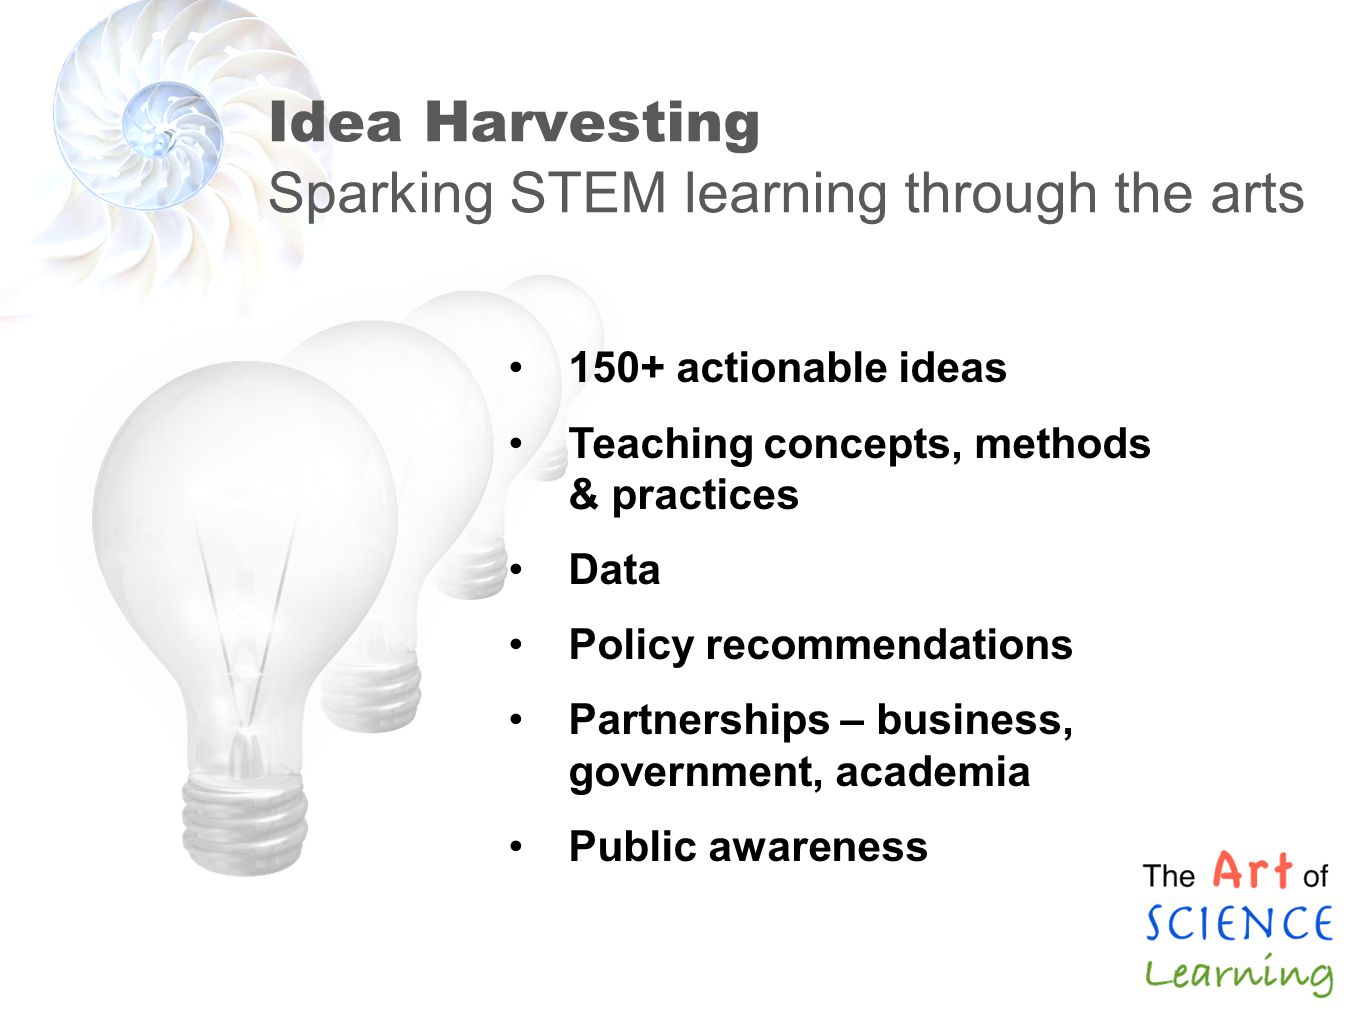 Idea Harvesting Sparking STEM learning through the arts 150+ actionable ideas Teaching concepts, methods & practices Data Policy recommendations Partnerships – business, government, academia Public awareness